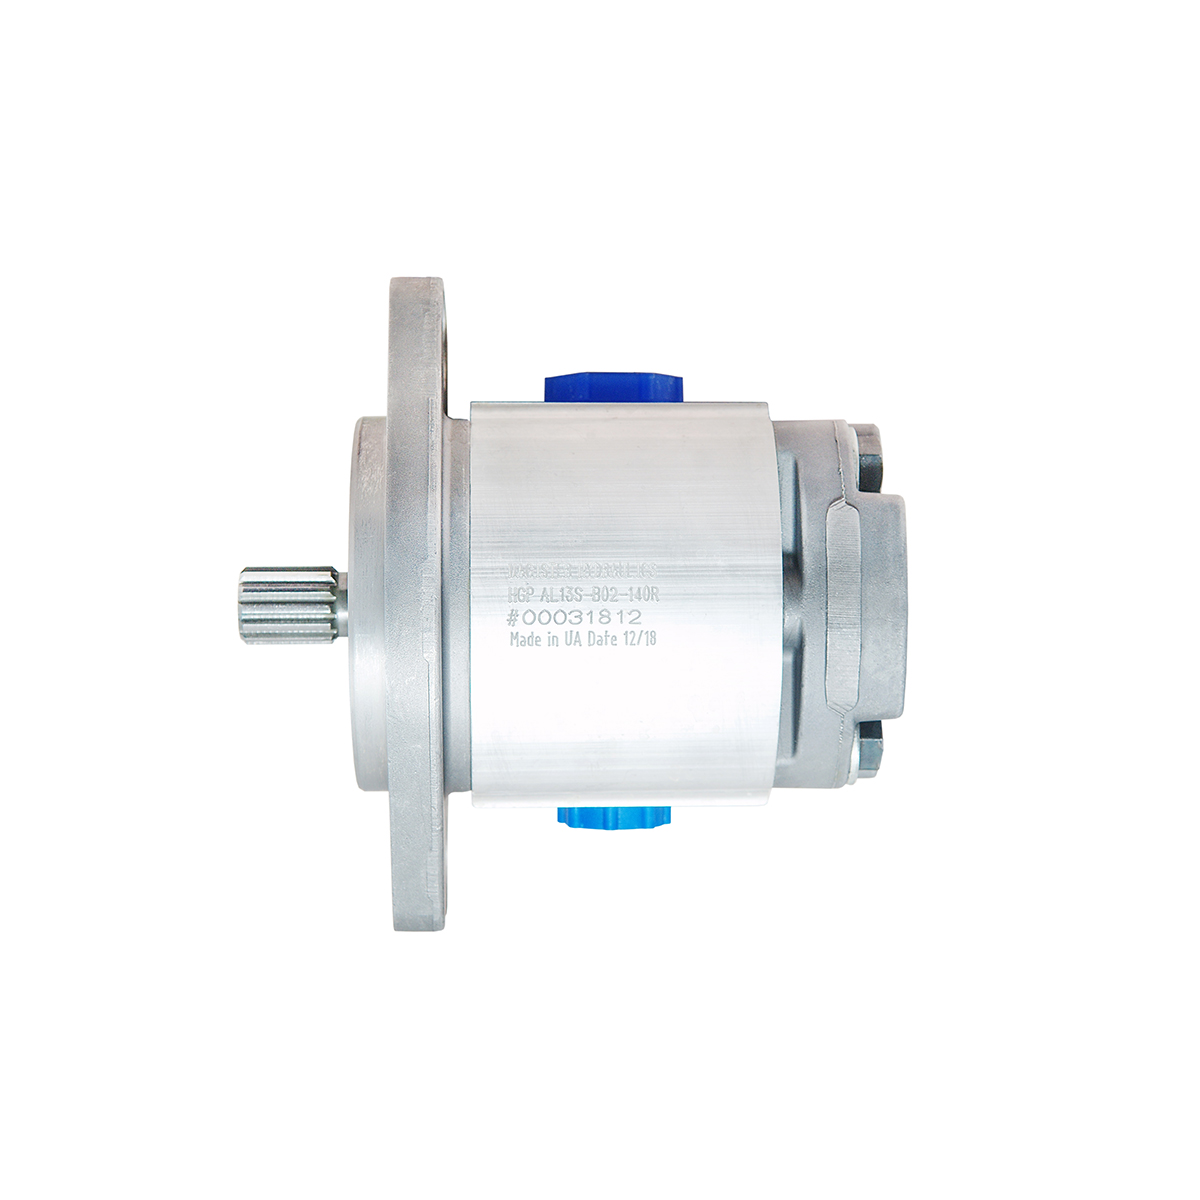 0.76 CID hydraulic gear pump, 9 tooth spline shaft counter-clockwise gear pump | Magister Hydraulics